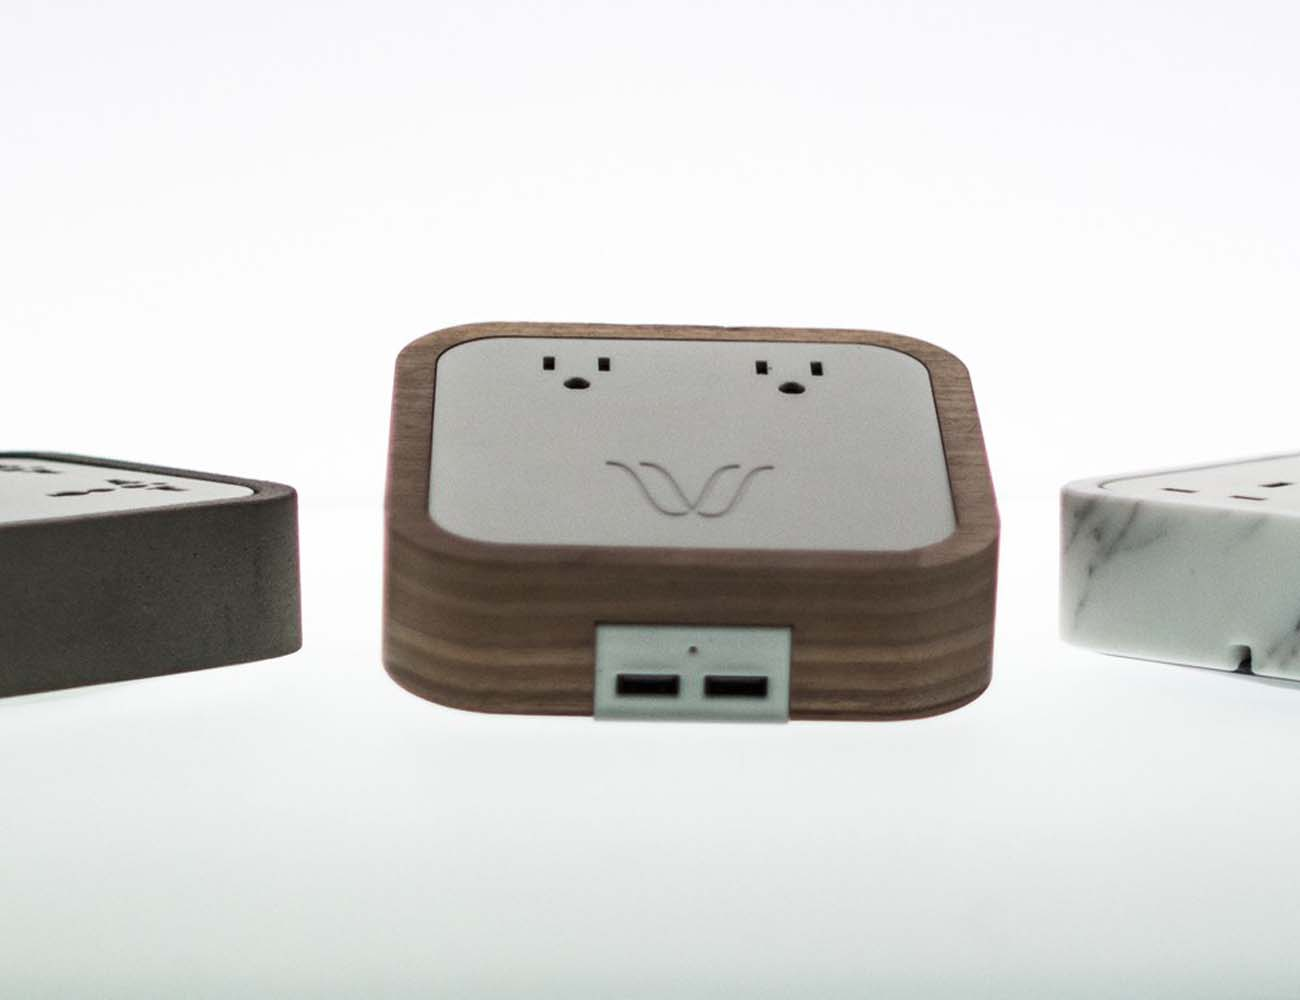 Woodie | All-in-one Italian Power Hub